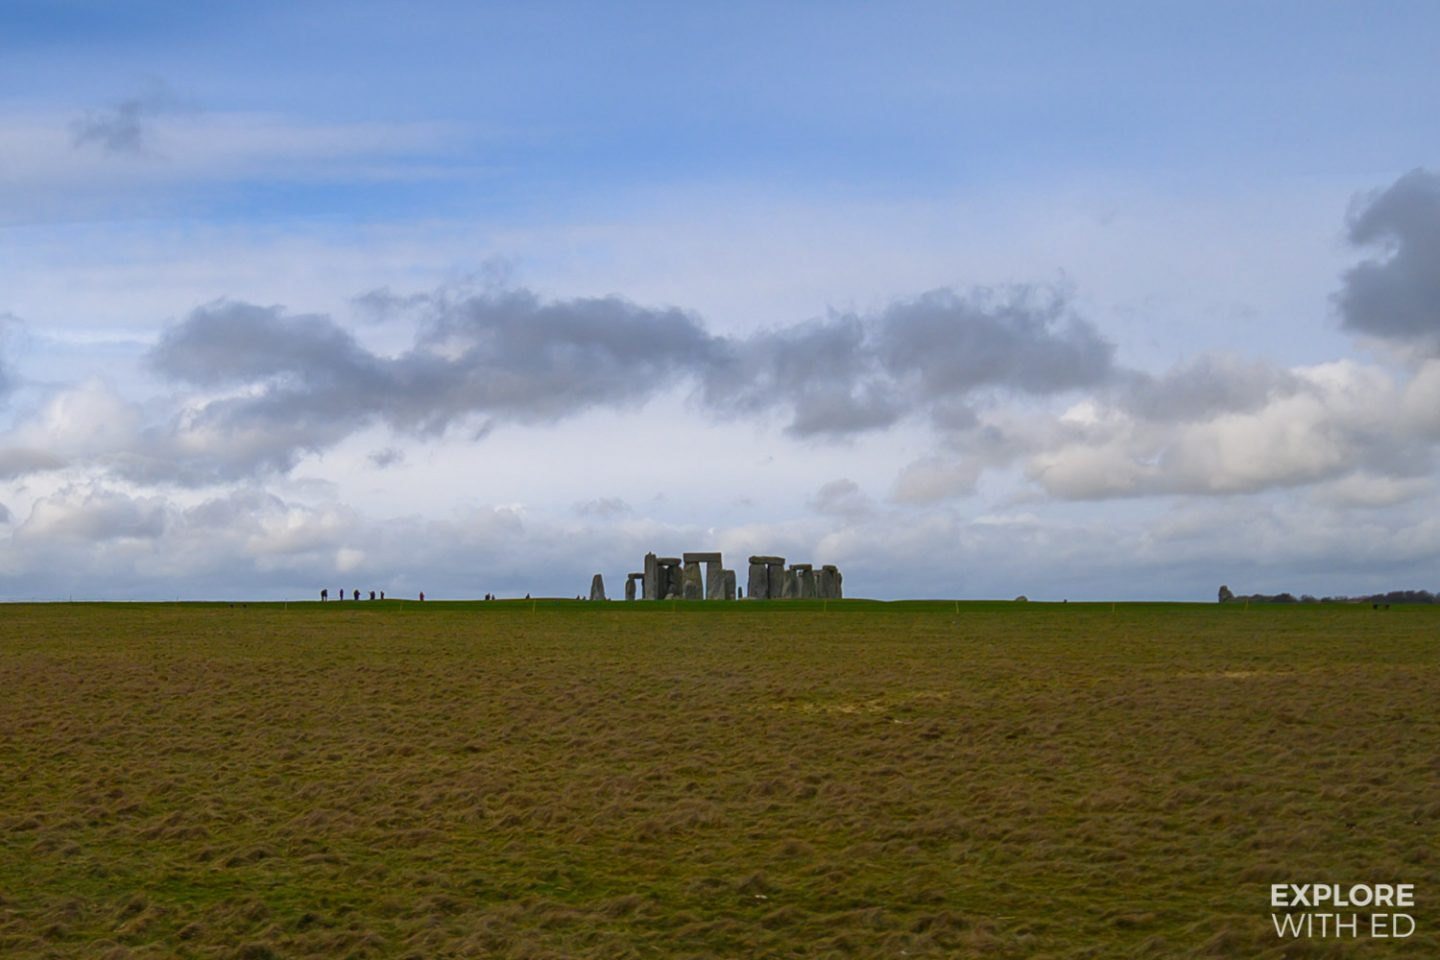 Driving past Stonehenge on the A303